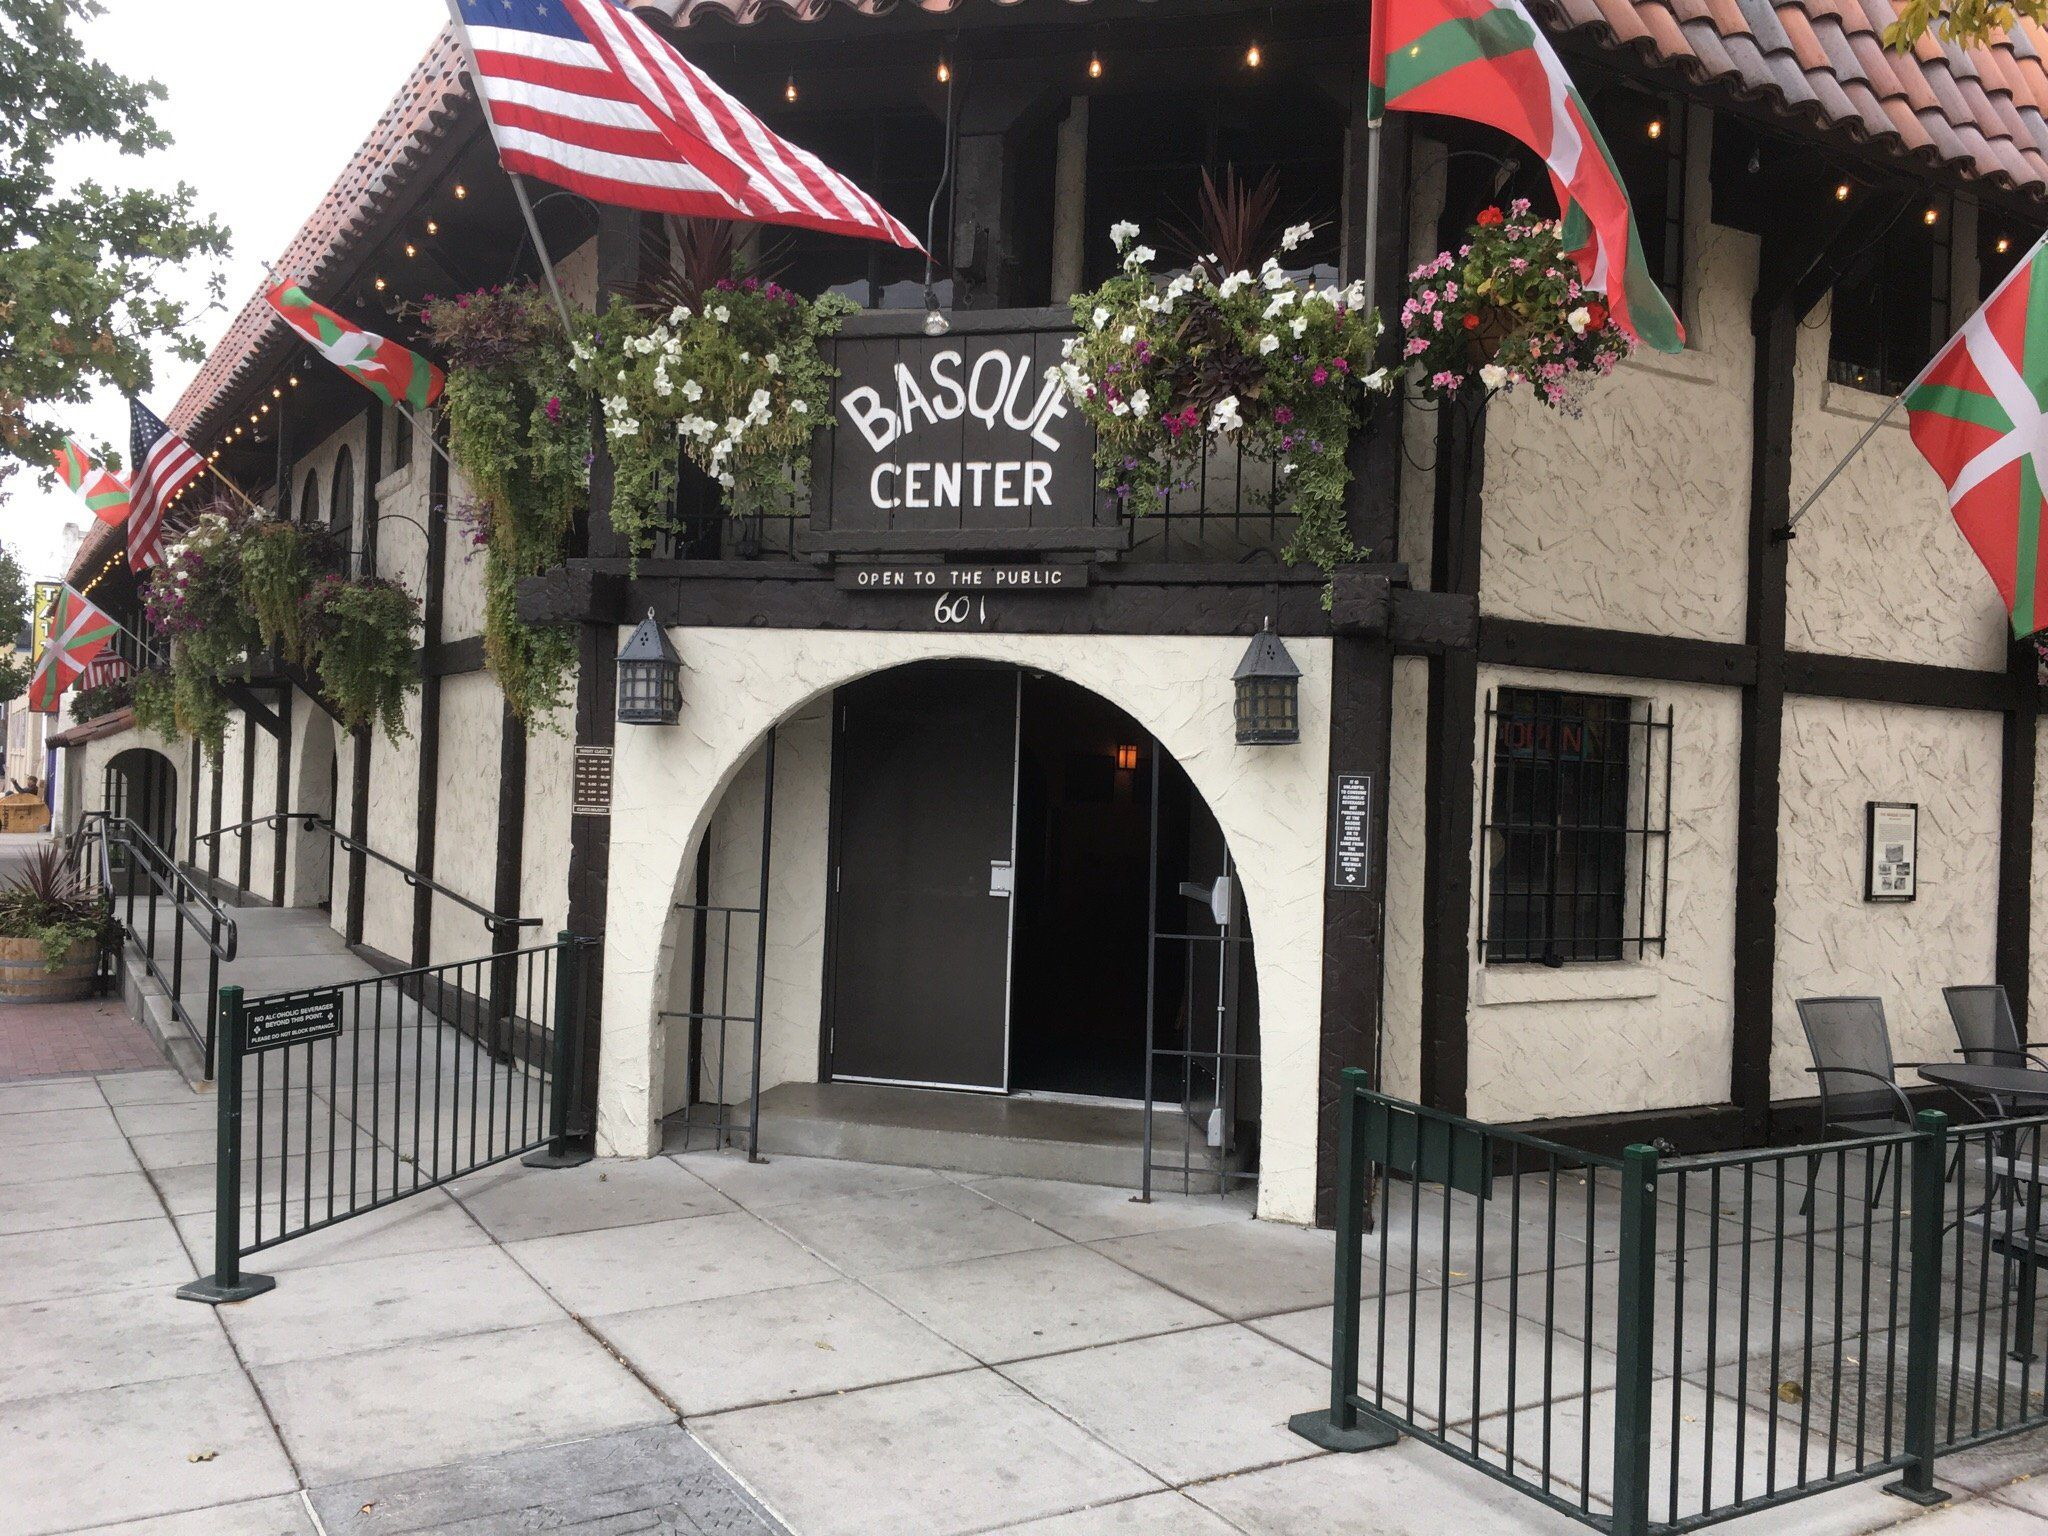 Basque Museum in Boise, Idaho, an intriguing stop along an RV journey through Pacific Northwest